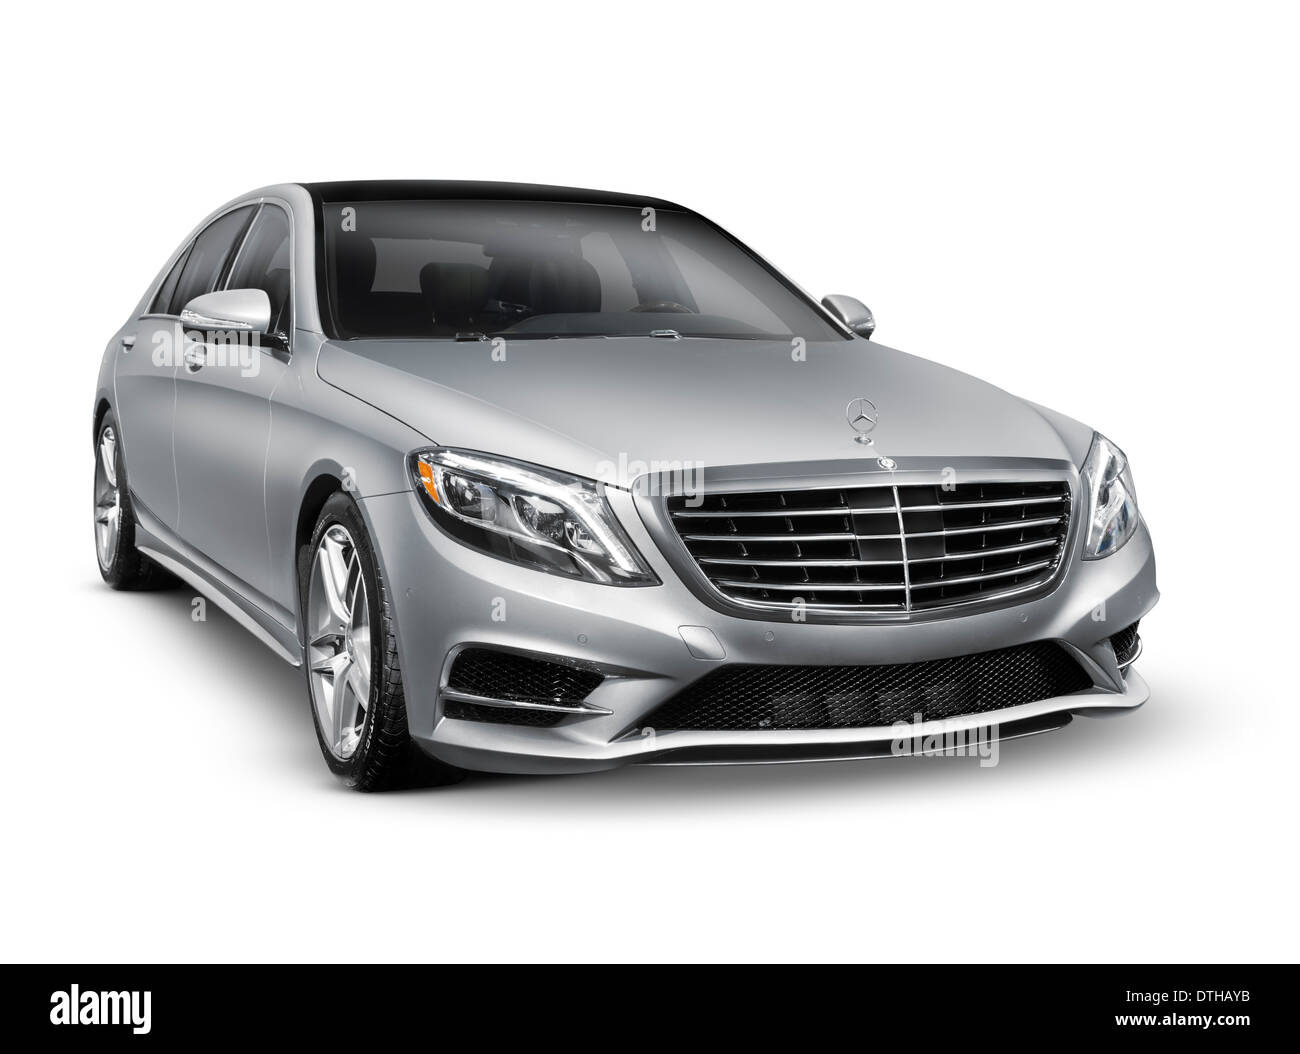 2014 mercedes benz s550 s class luxury sedan isolated car for Mercedes benz luxury car